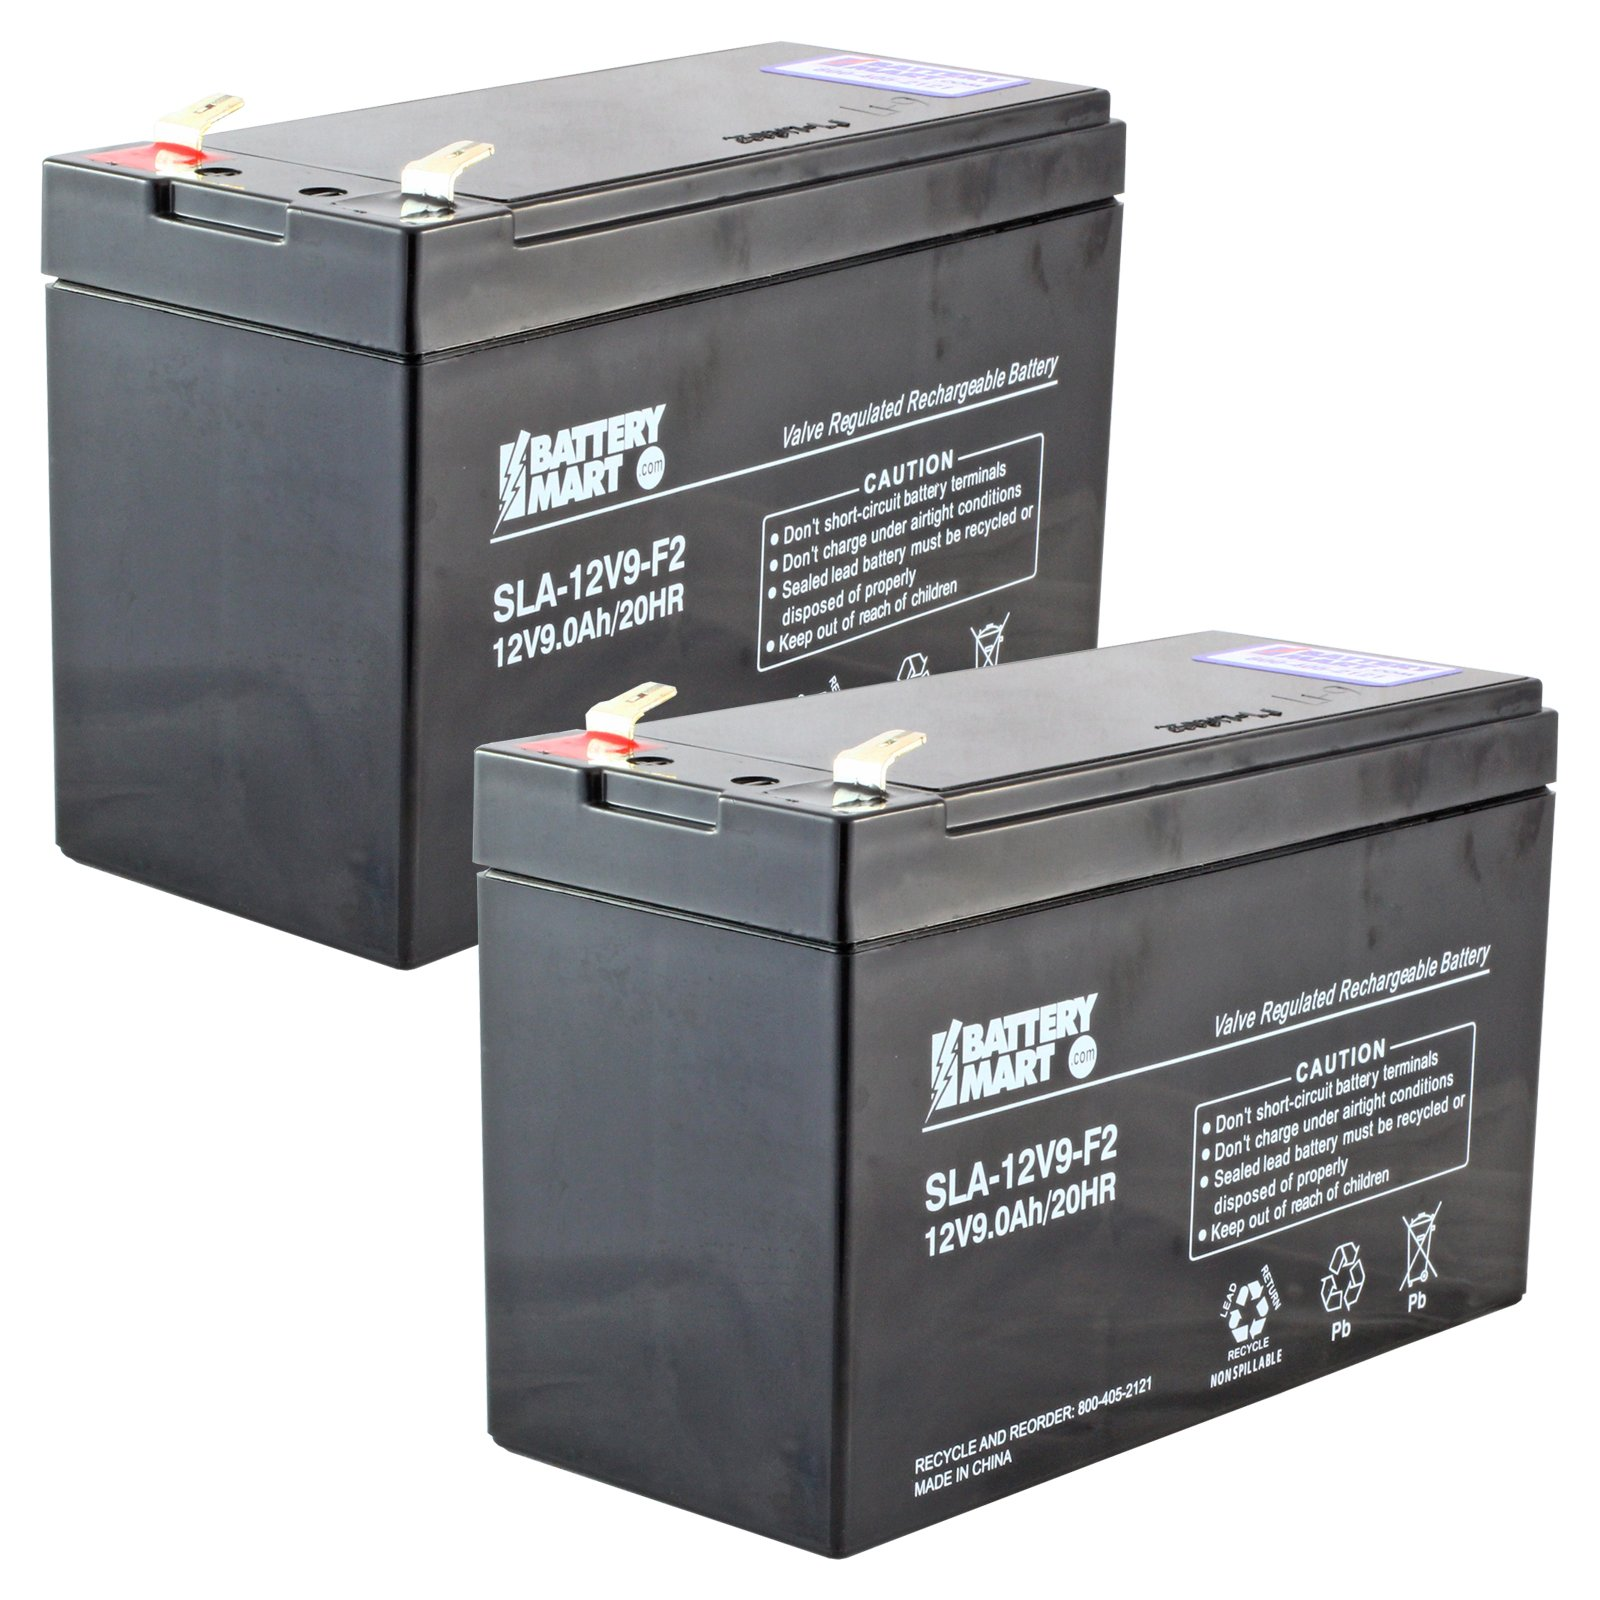 hight resolution of  2 pack 12 volt 9 ah sealed lead acid rechargeable battery f2 terminal free shipping batterymart com